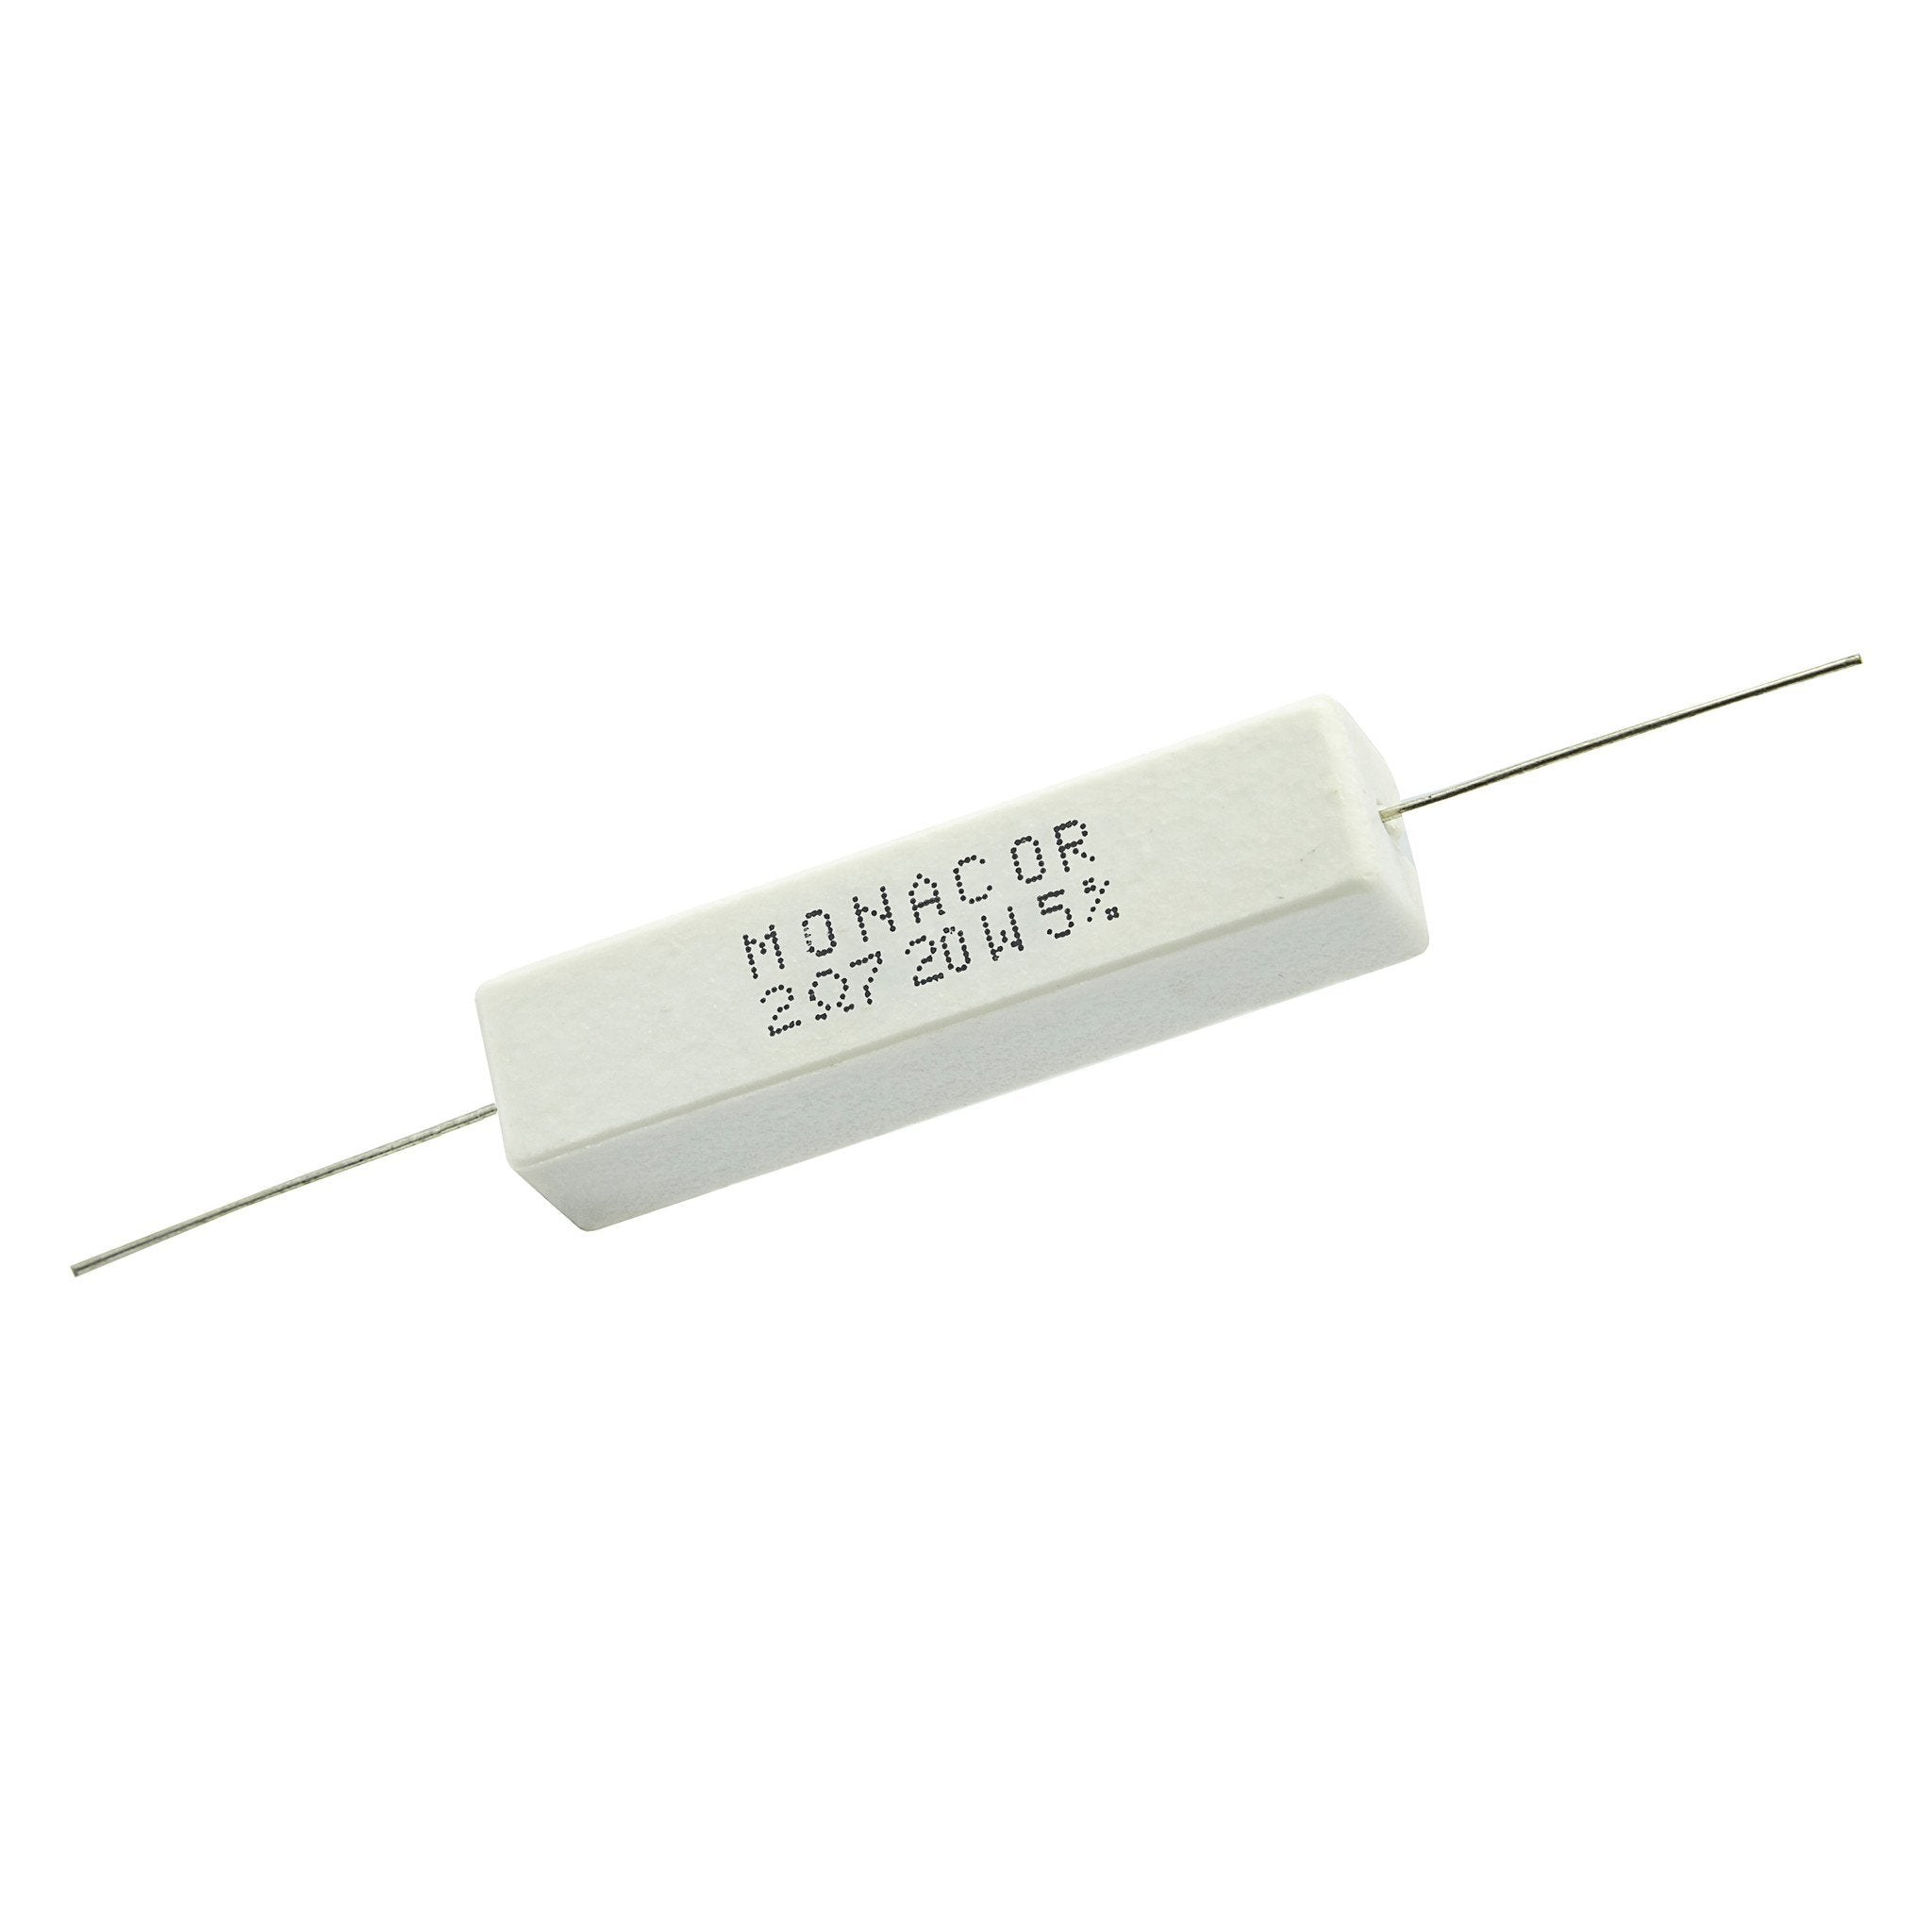 2.7 Ohm 20 Watt 5% Ceramic Wirewound Resistor - Willys-Hifi Ltd